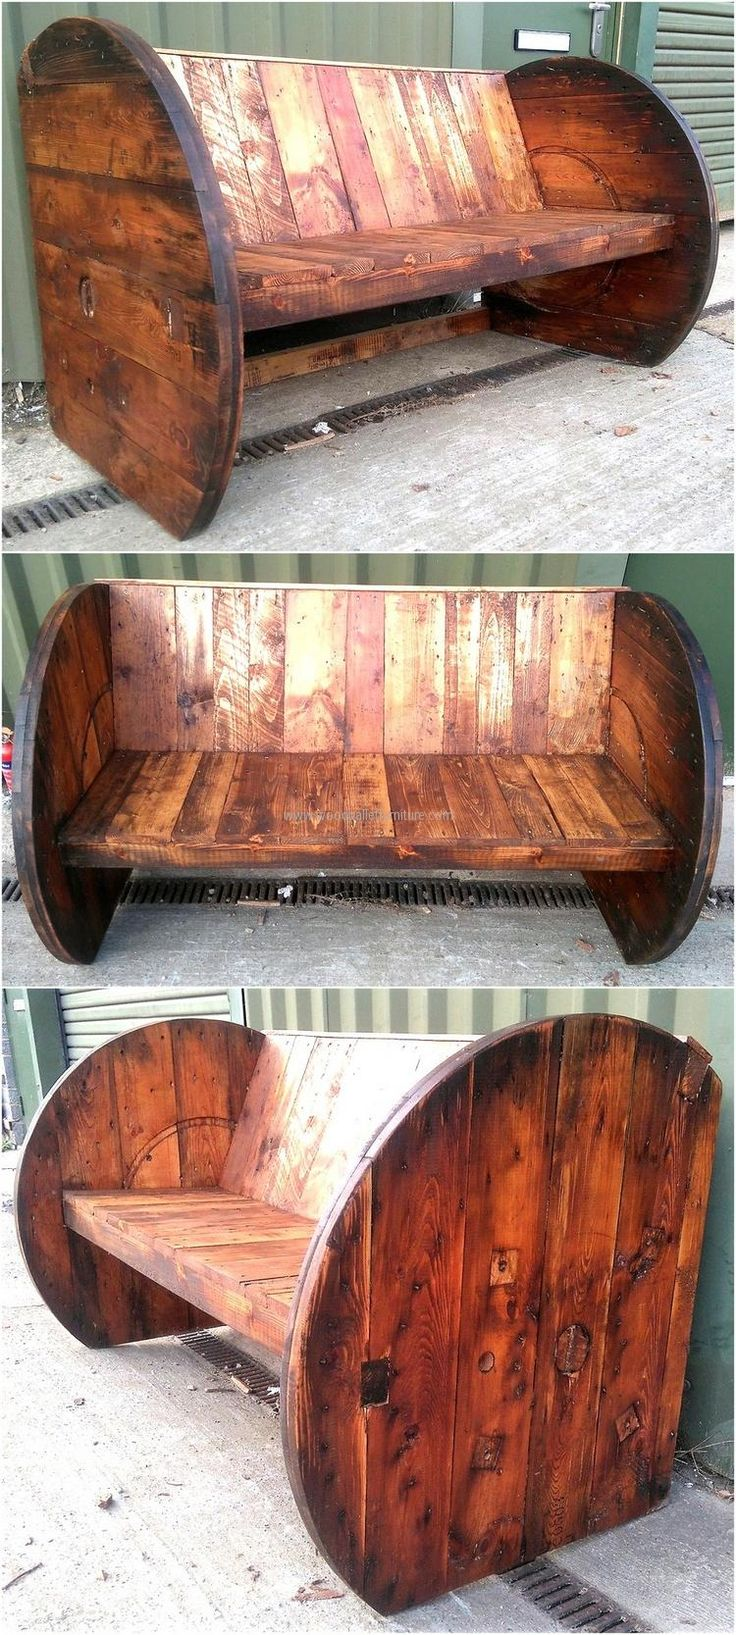 Wood pallet cable reel bench is a unique style which looks awesome when placed outdoor, it is comfortable for sitting as the back of the bench is slightly bent which helps in relaxing the back when a person sit on it.